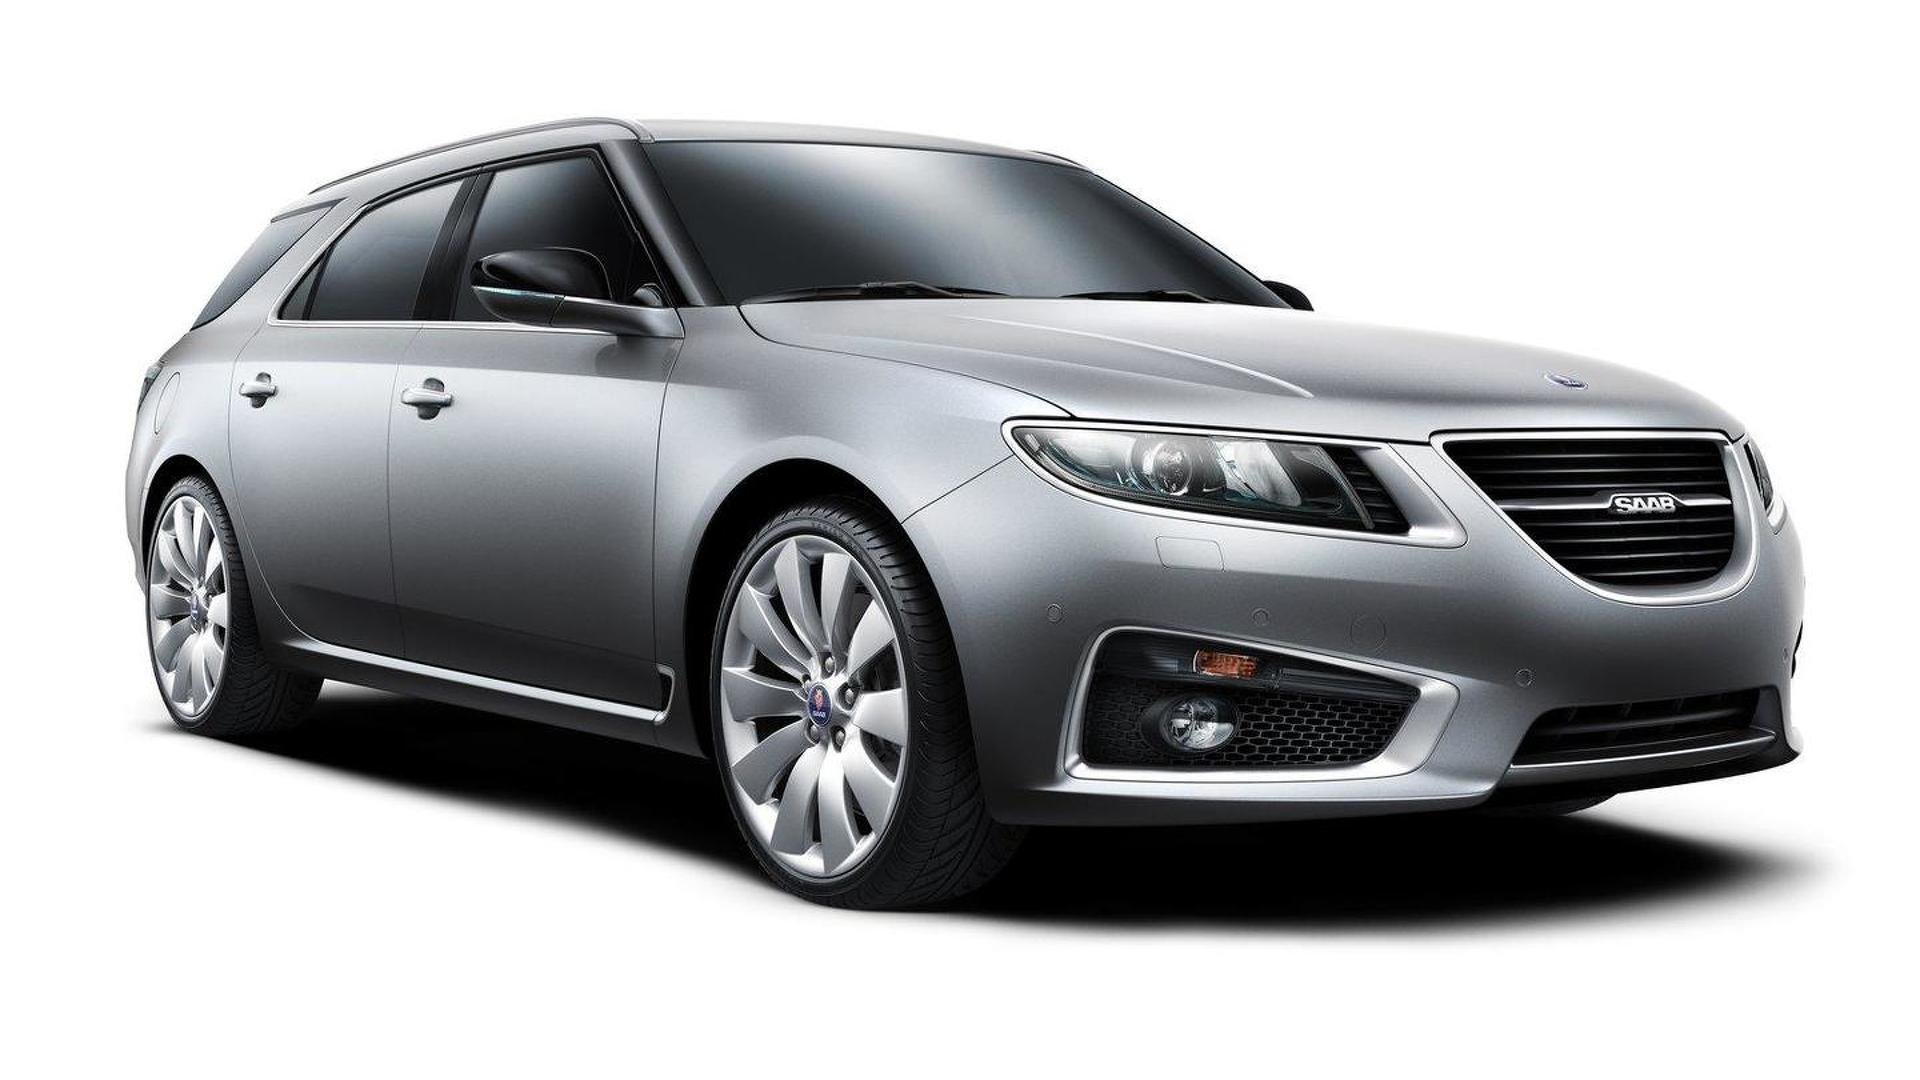 BMW interested in Saab - report